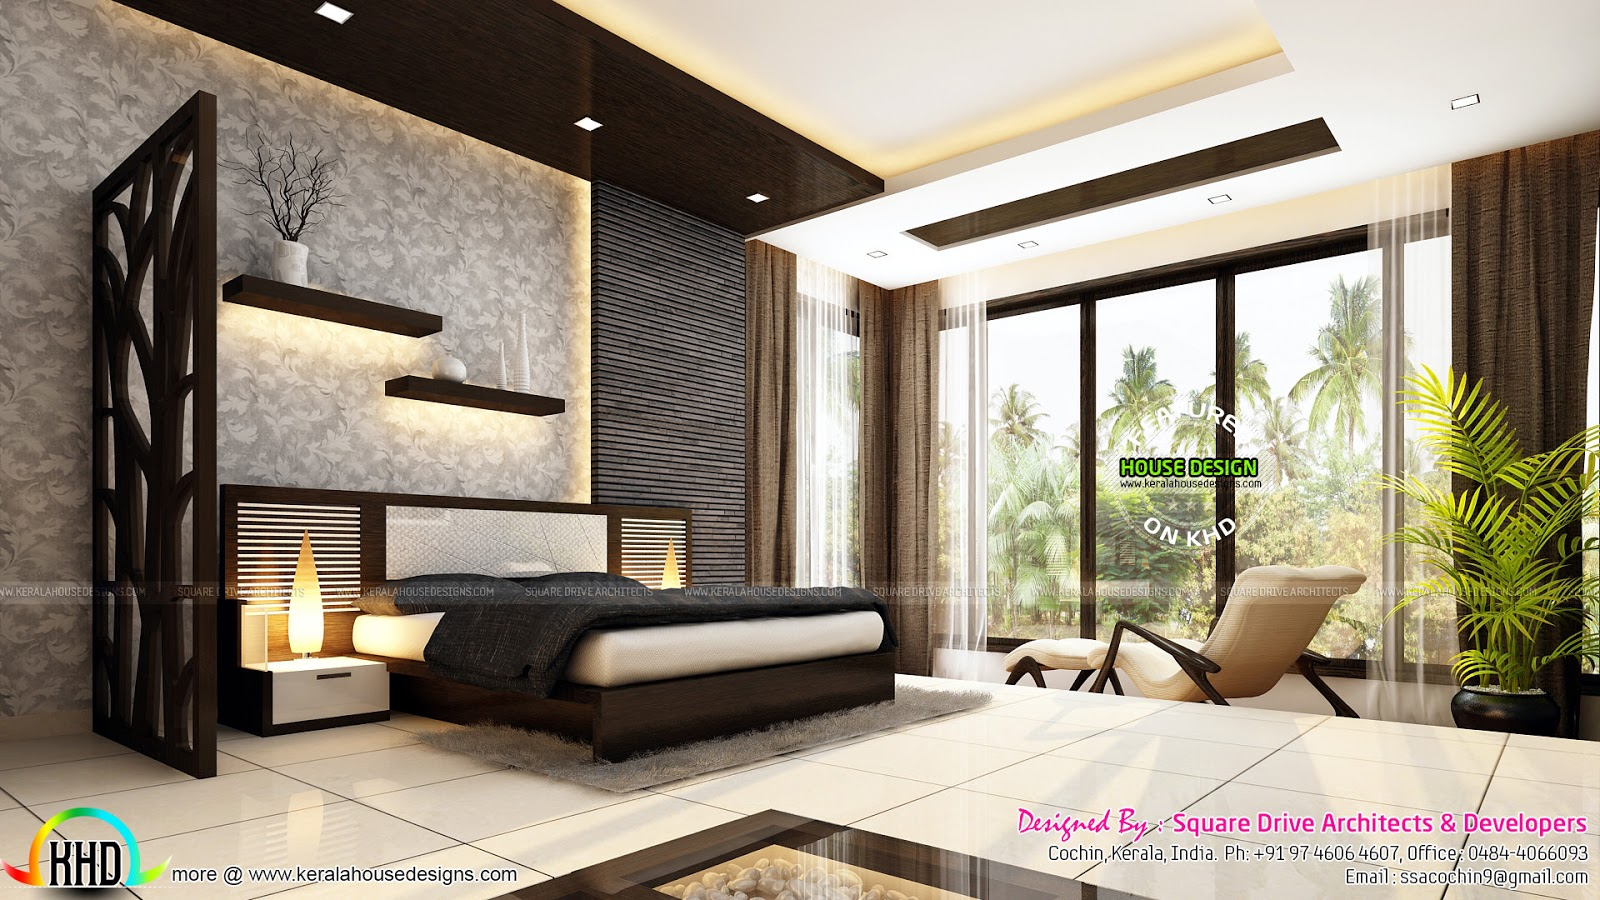 Very beautiful modern interior designs - Kerala home ...